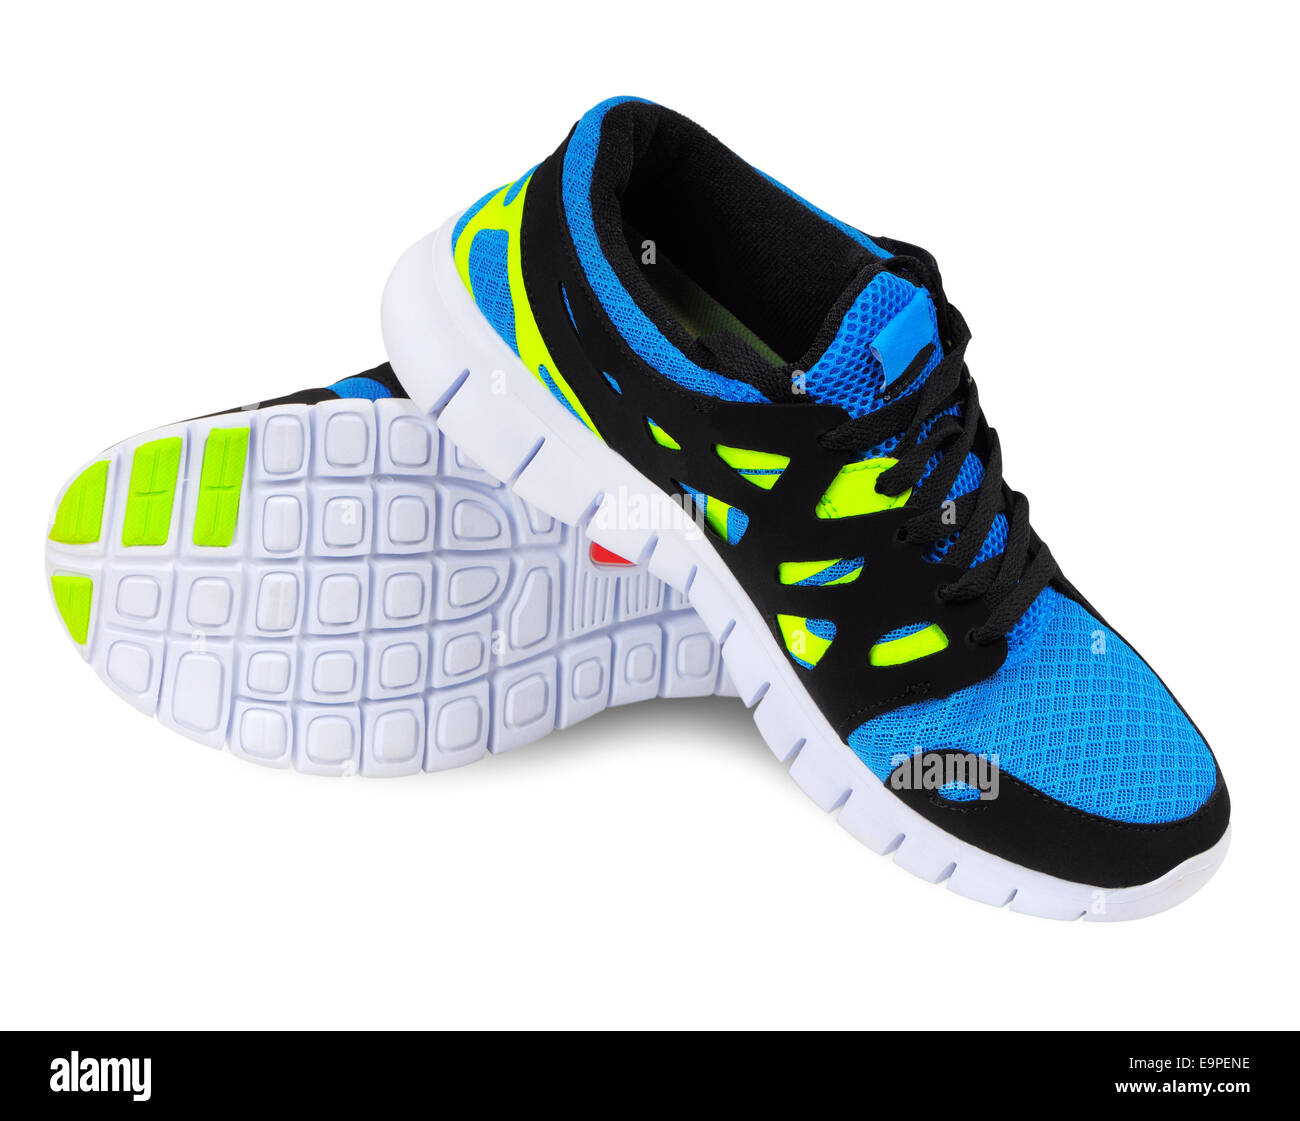 Lightweight running shoes for athletics on a white background - Stock Image